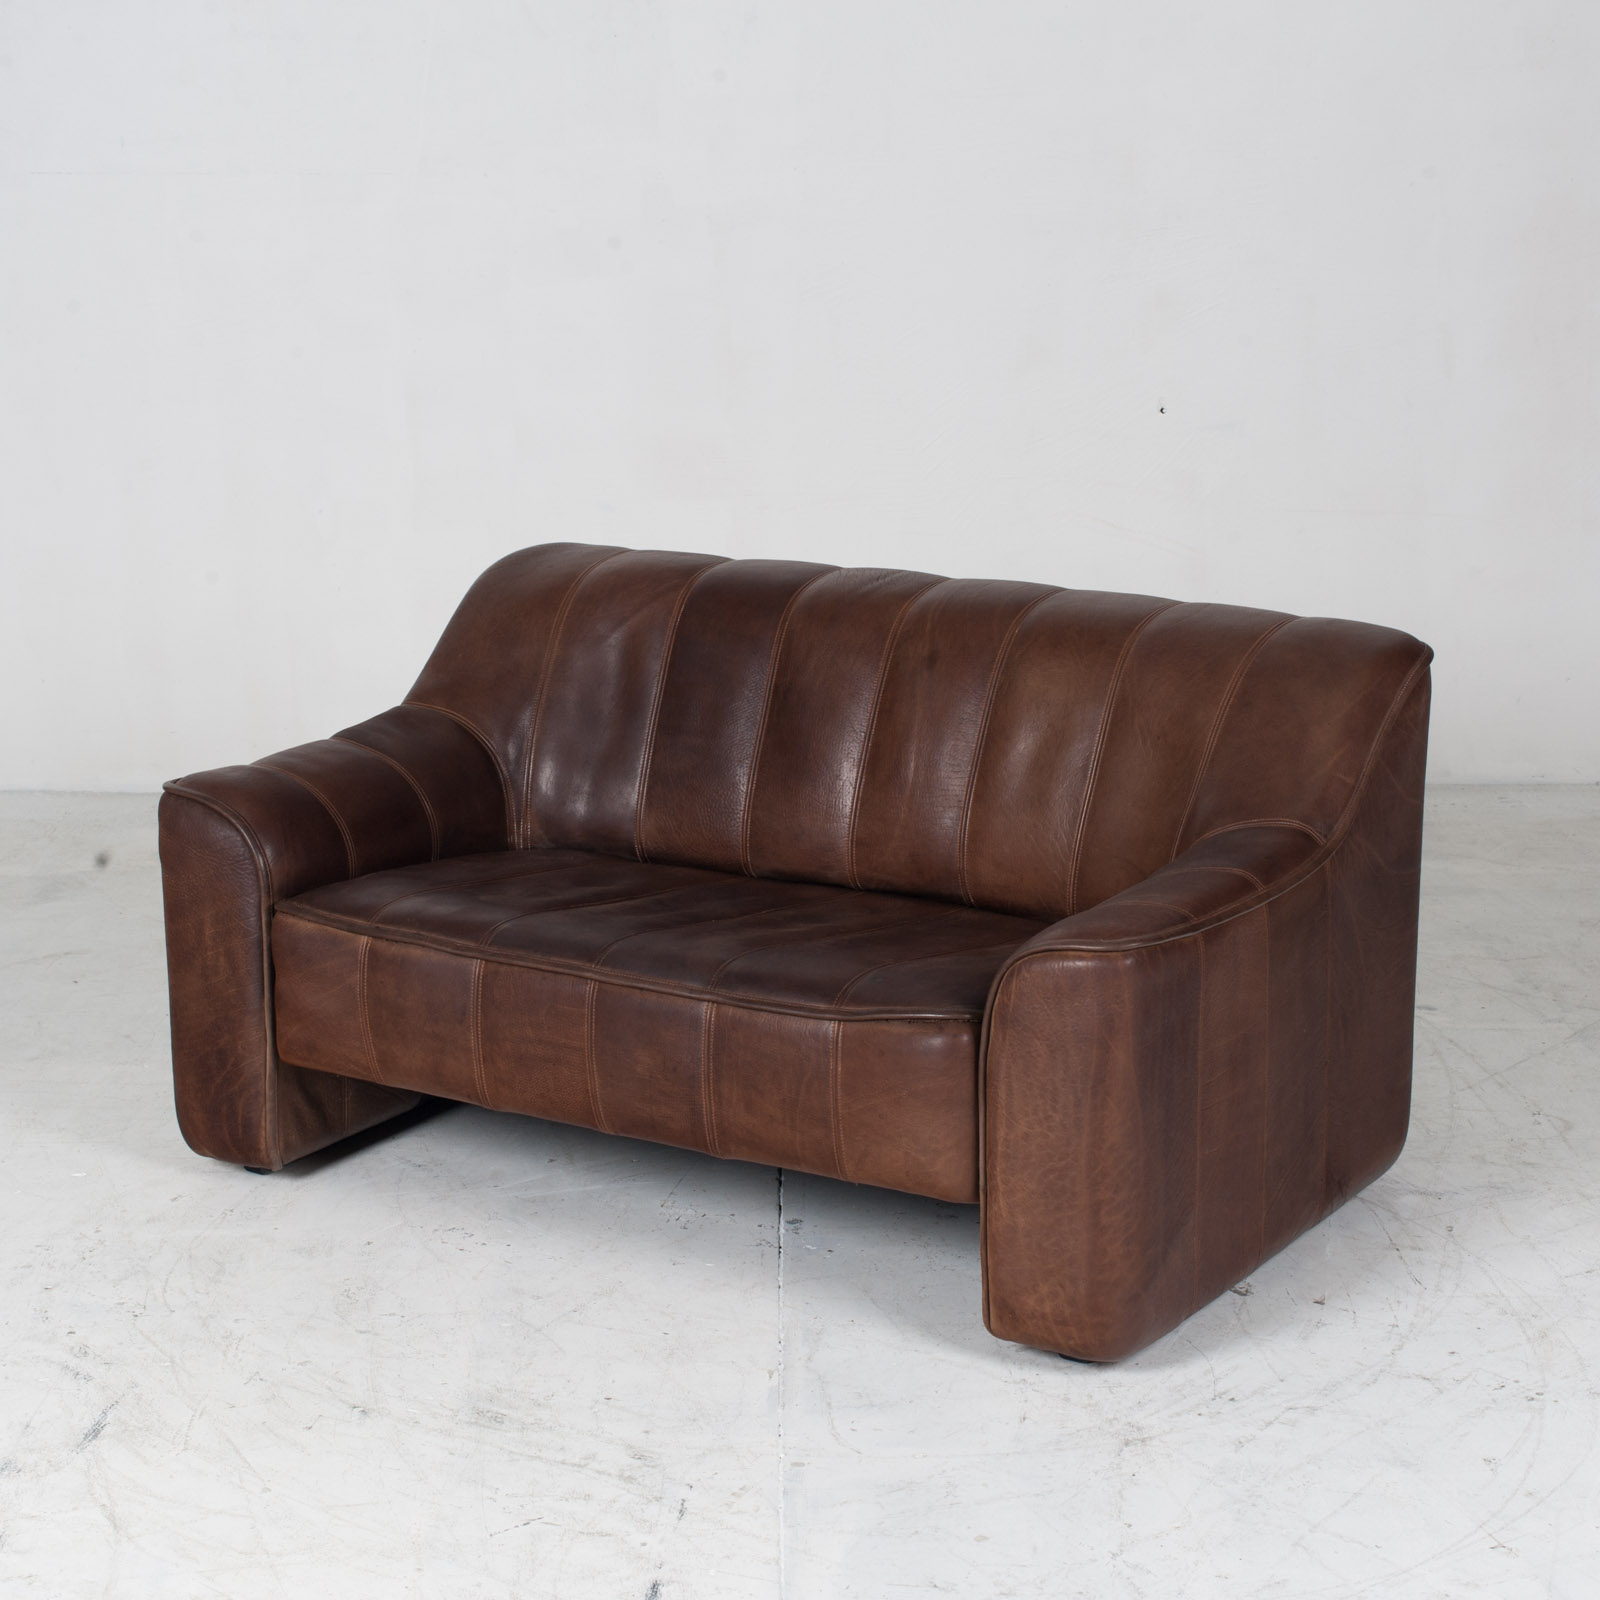 Model Ds 44 2 Seat Sofa In Buffalo Leather 1960s Switzerland 04